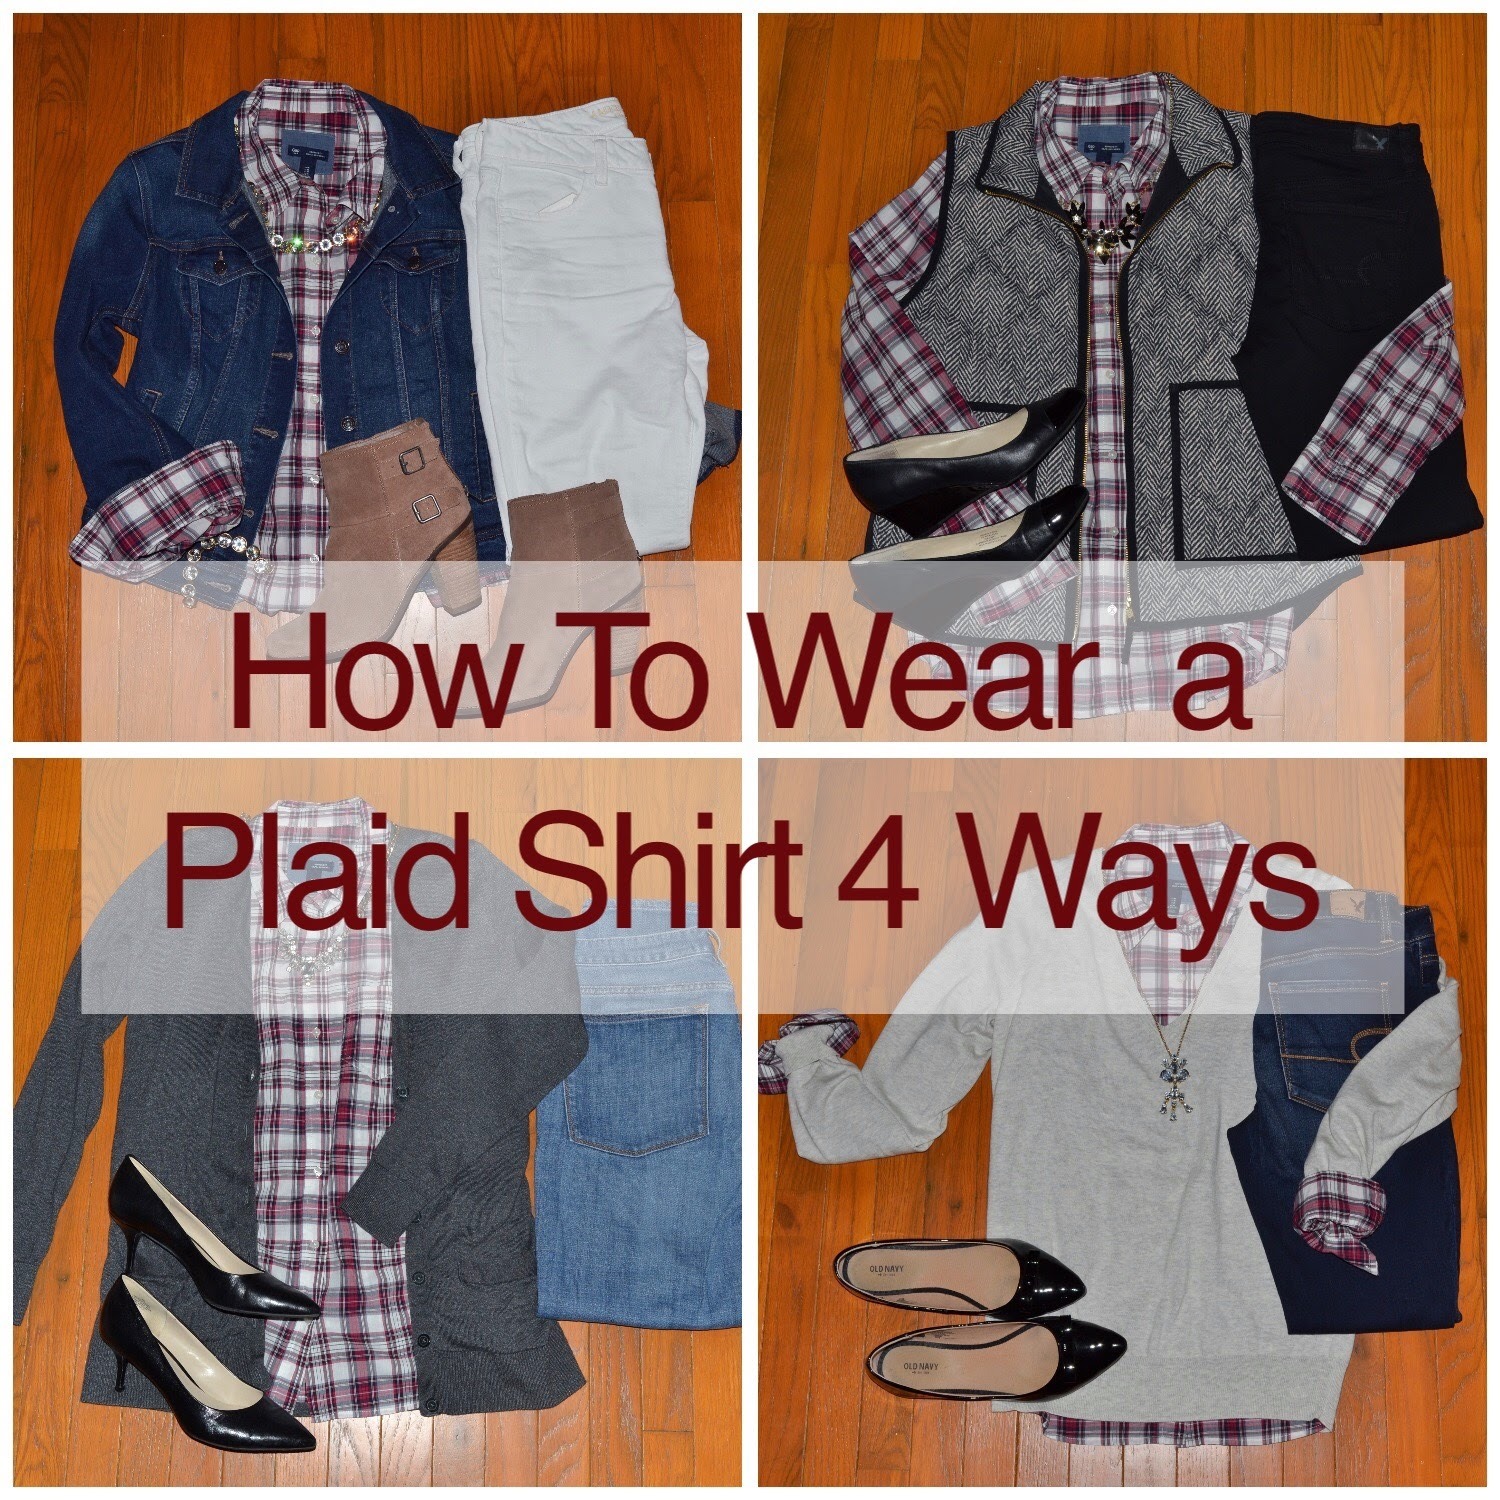 How To Wear A Plaid Shirt 4 Ways